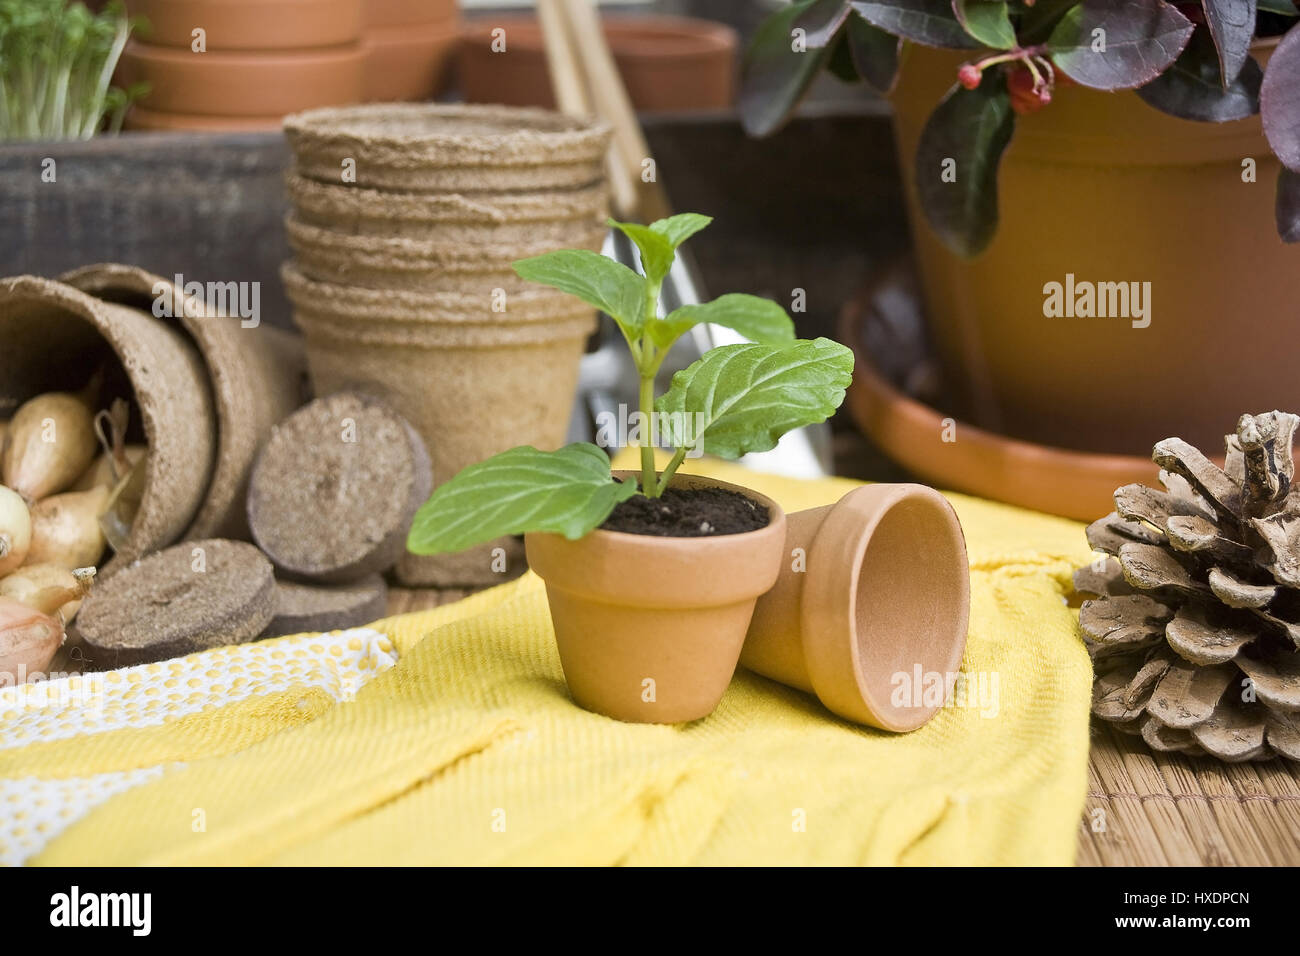 Setzling in a flowerpot with gloves, Seedling in a pot with gloves |, Setzling in einem Blumentopf mit Handschuhe - Stock Image